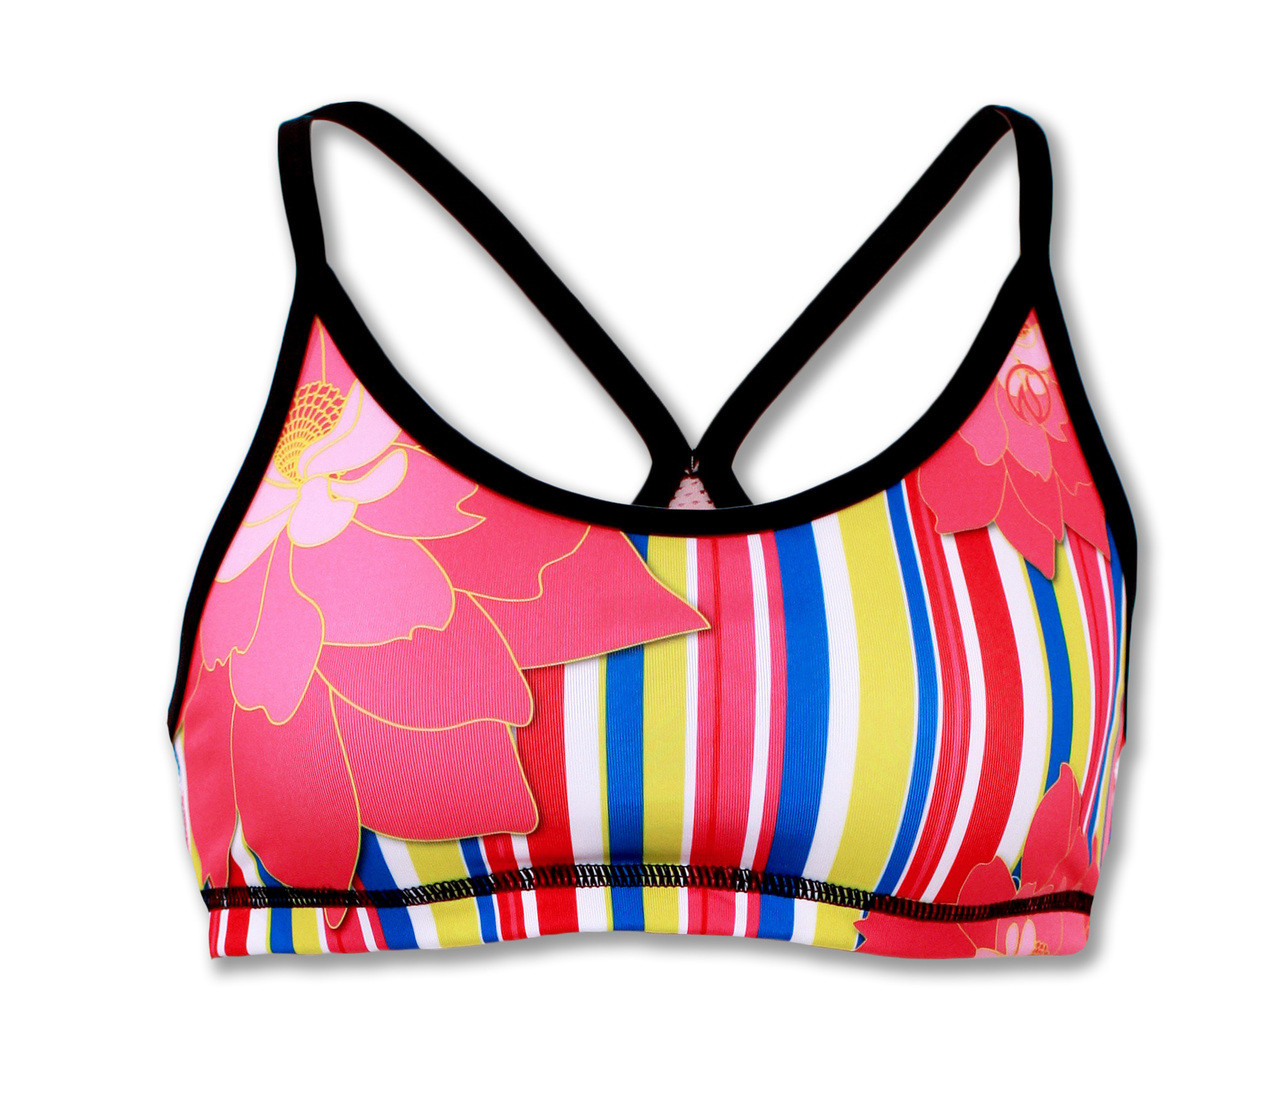 b6bfdc165d2bb Women s Sports Bra with Stripes and Pink Peony Design